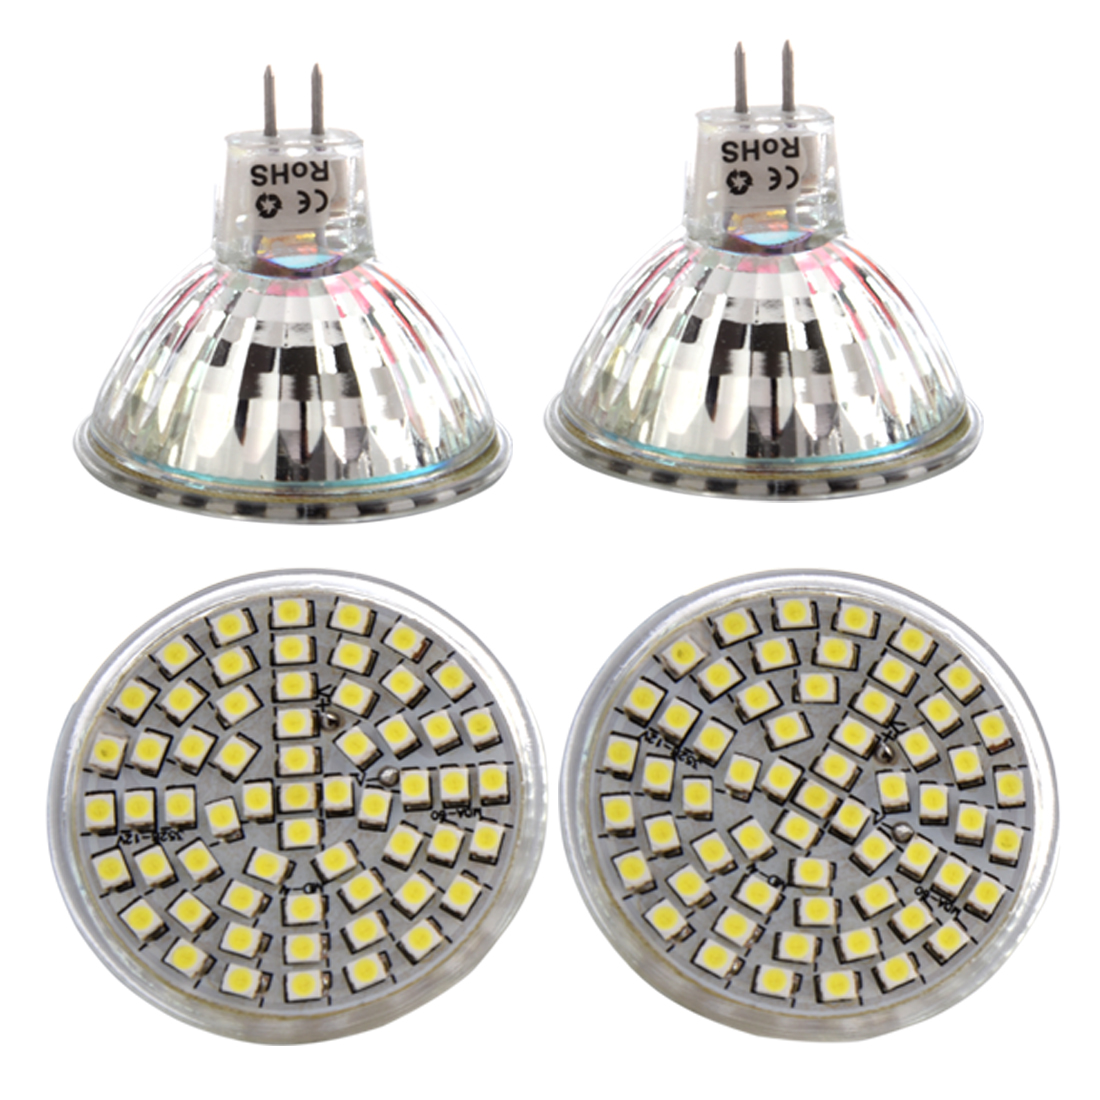 4x MR16 GU5.3 White 60 SMD 3528 LED Energy Saving Spotlight Light Lamp Bulb 12V led smart emergency lamp led bulb led e27 bulb lights light bulb energy saving 5w 7w 9w after power failure automatic lighting